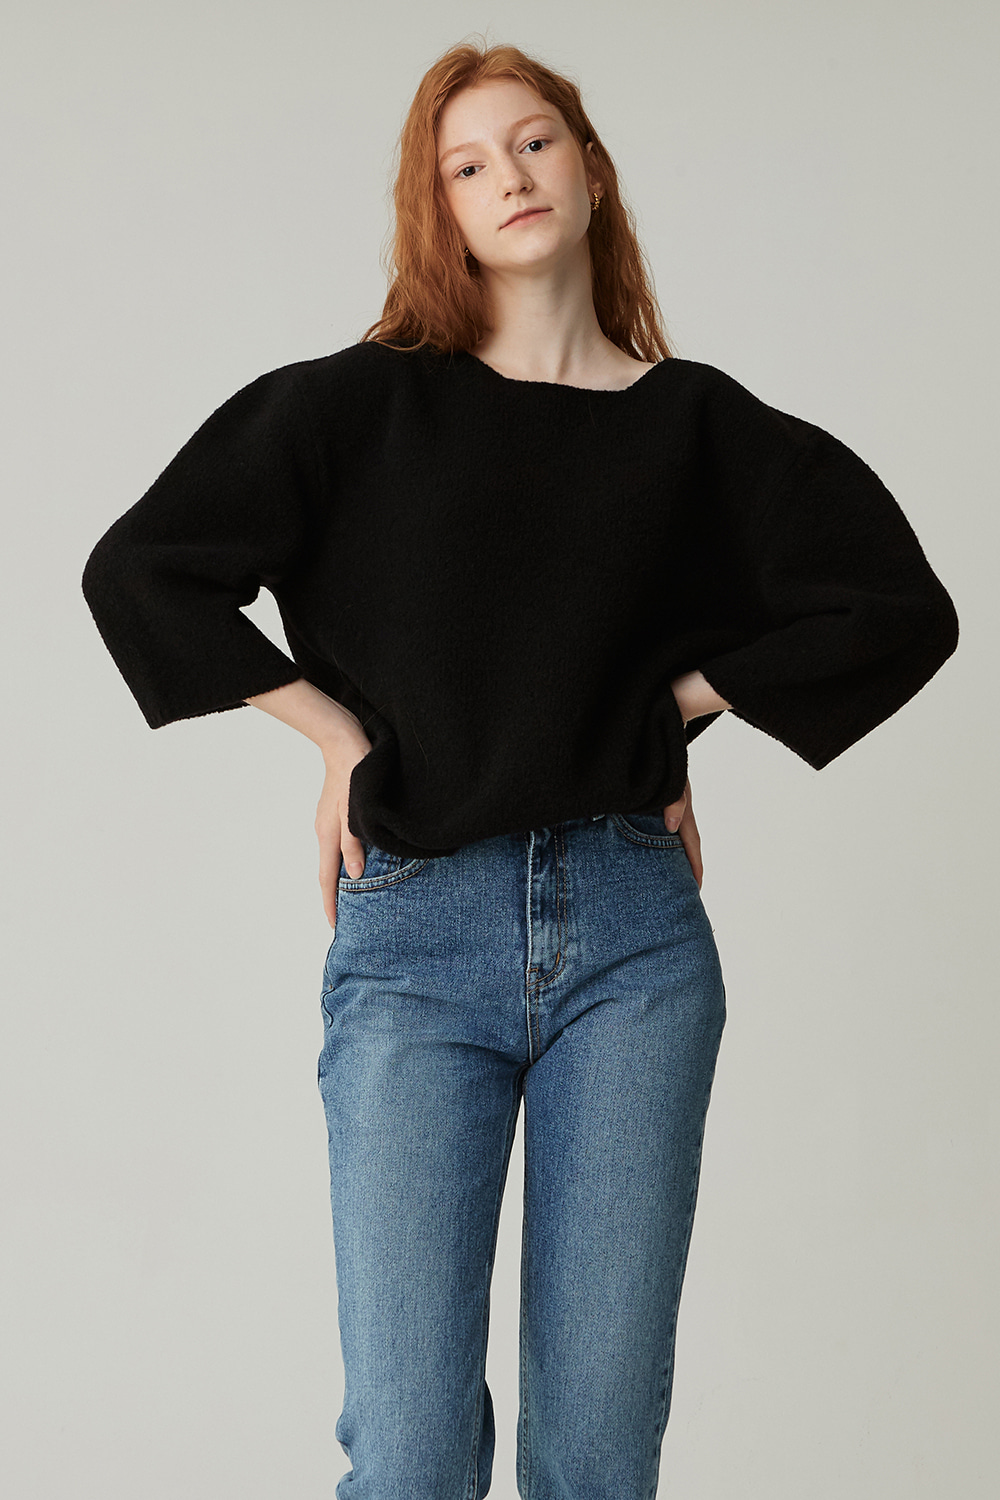 CHAGALL BOUCLE KNIT (BLACK)